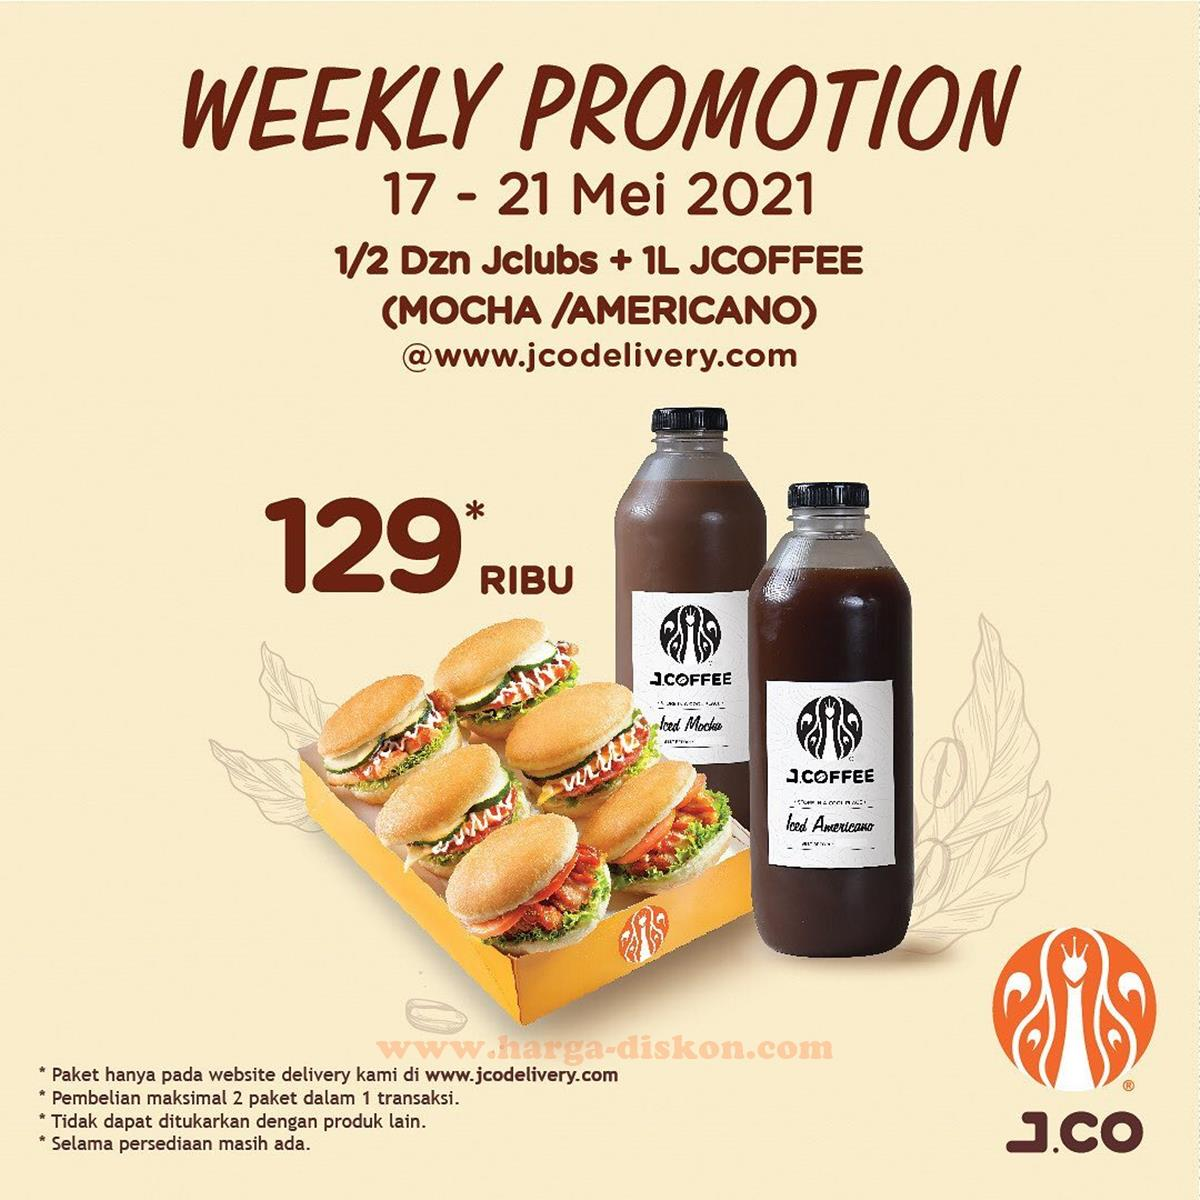 Promo JCO Delivery 1/2 Lusin JClubs + 1 L JCoffee Rp129.000 Periode 17 - 21 Mei 2021